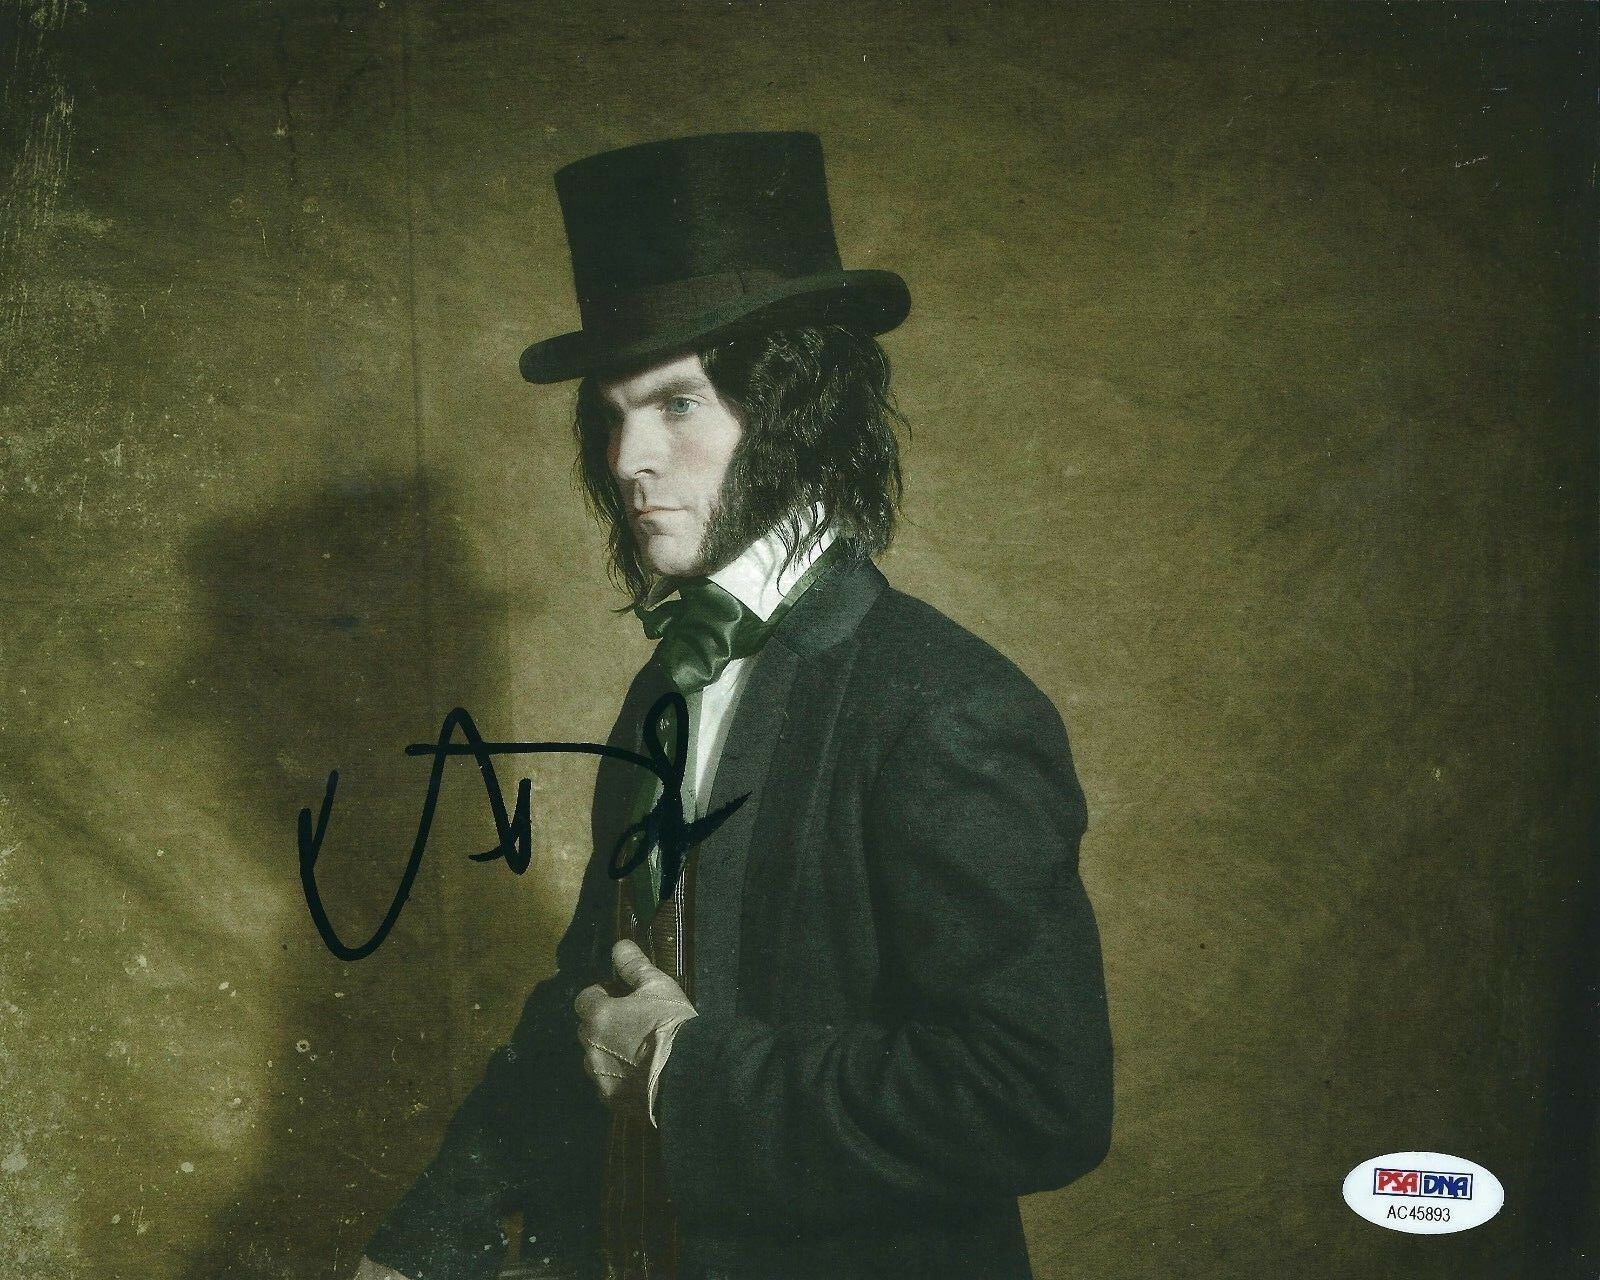 Wes Bentley Signed 'American Horror Story' 8x10 Photo PSA AC45893